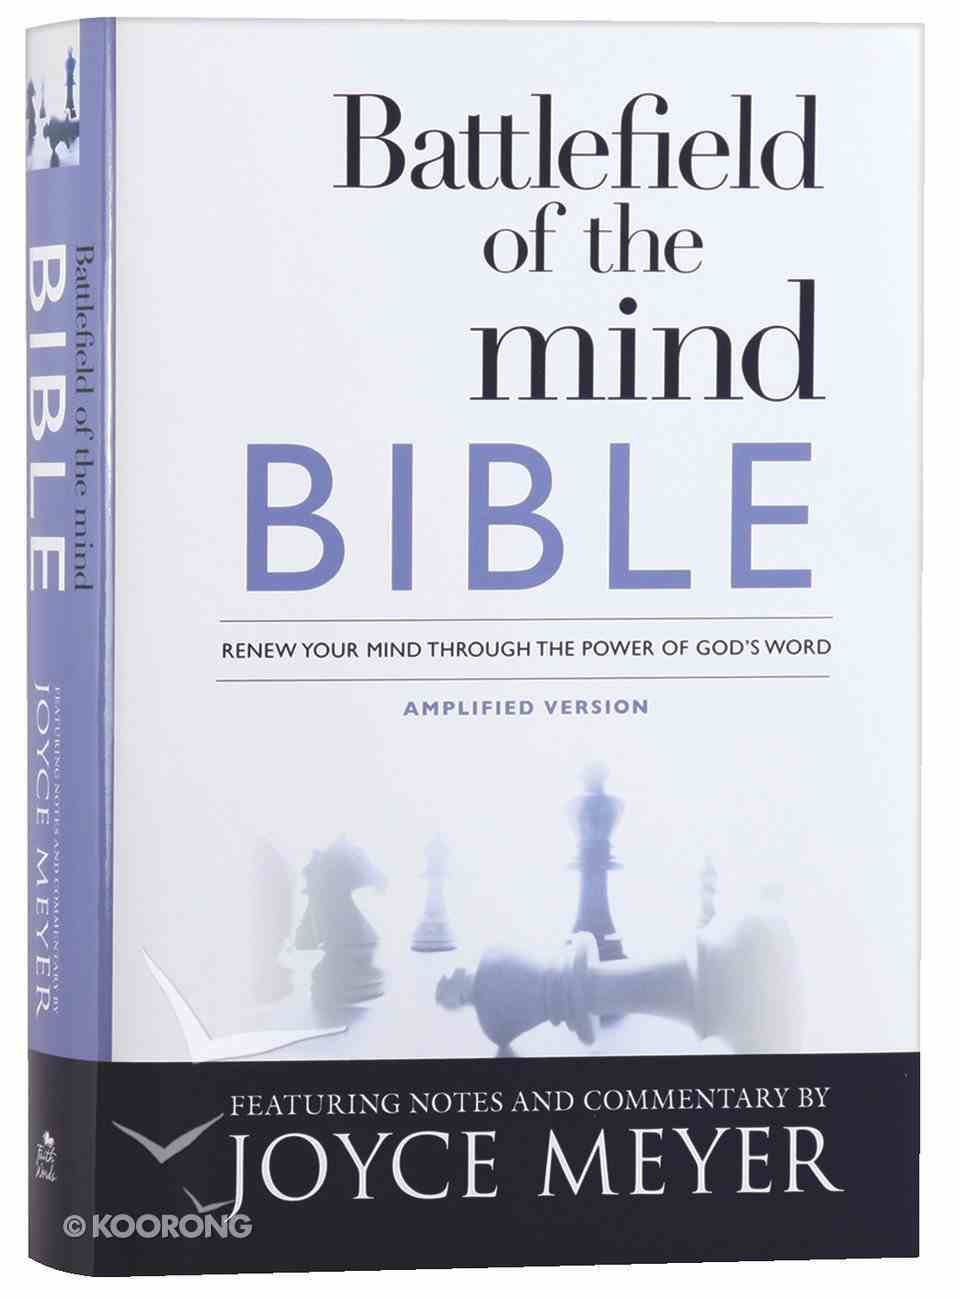 Amplified Battlefield of the Mind Bible Hardback